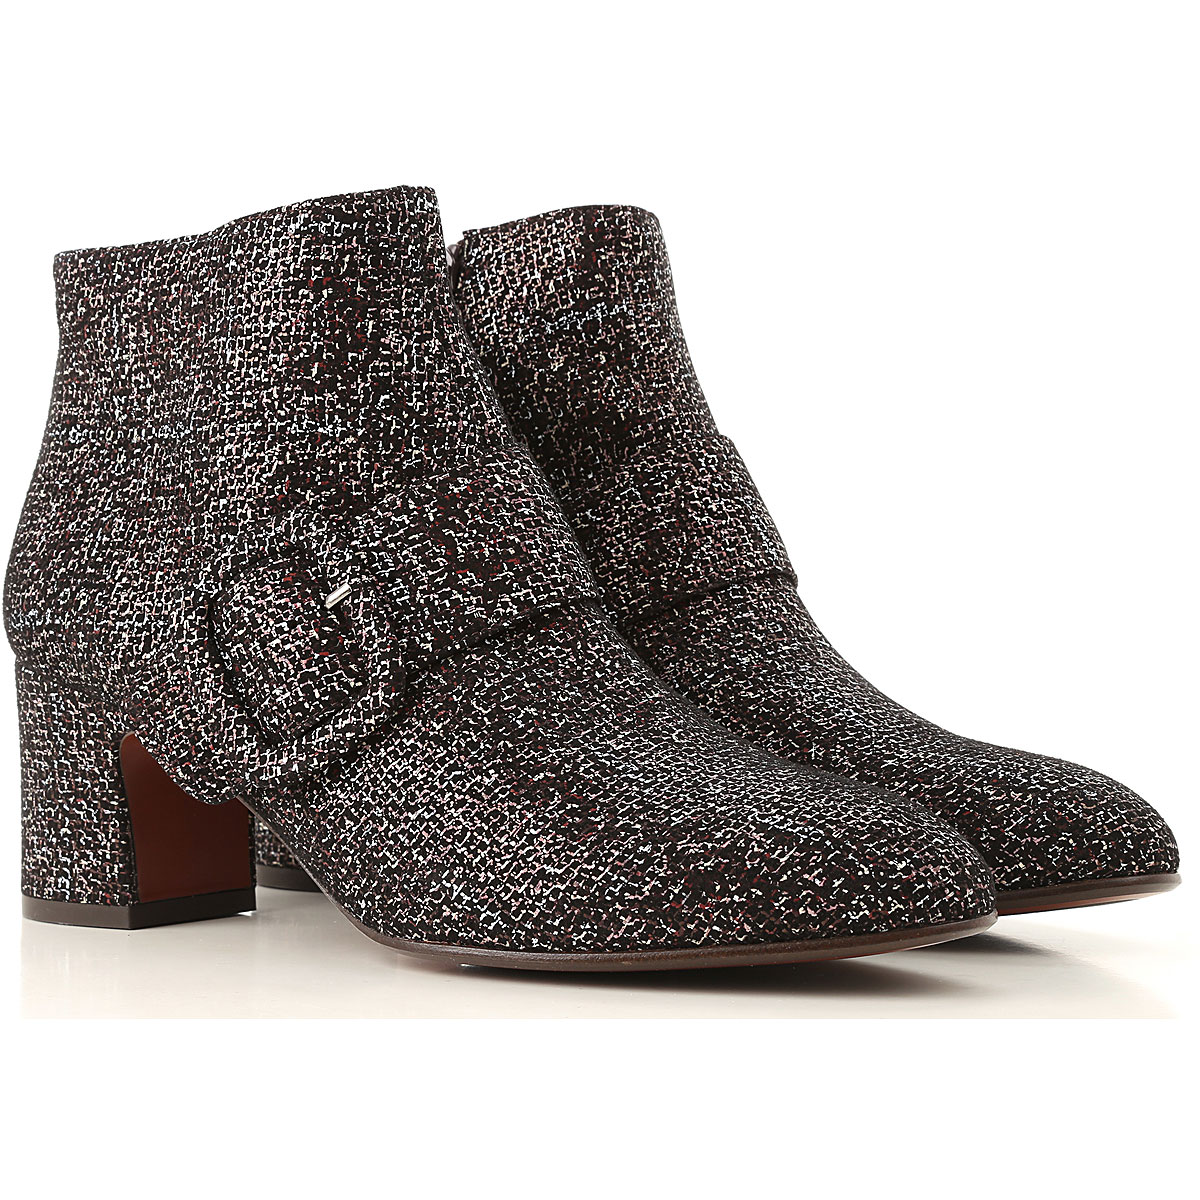 Chie Mihara Boots for Women, Booties On Sale in Outlet, Black, Leather, 2019, 8 9